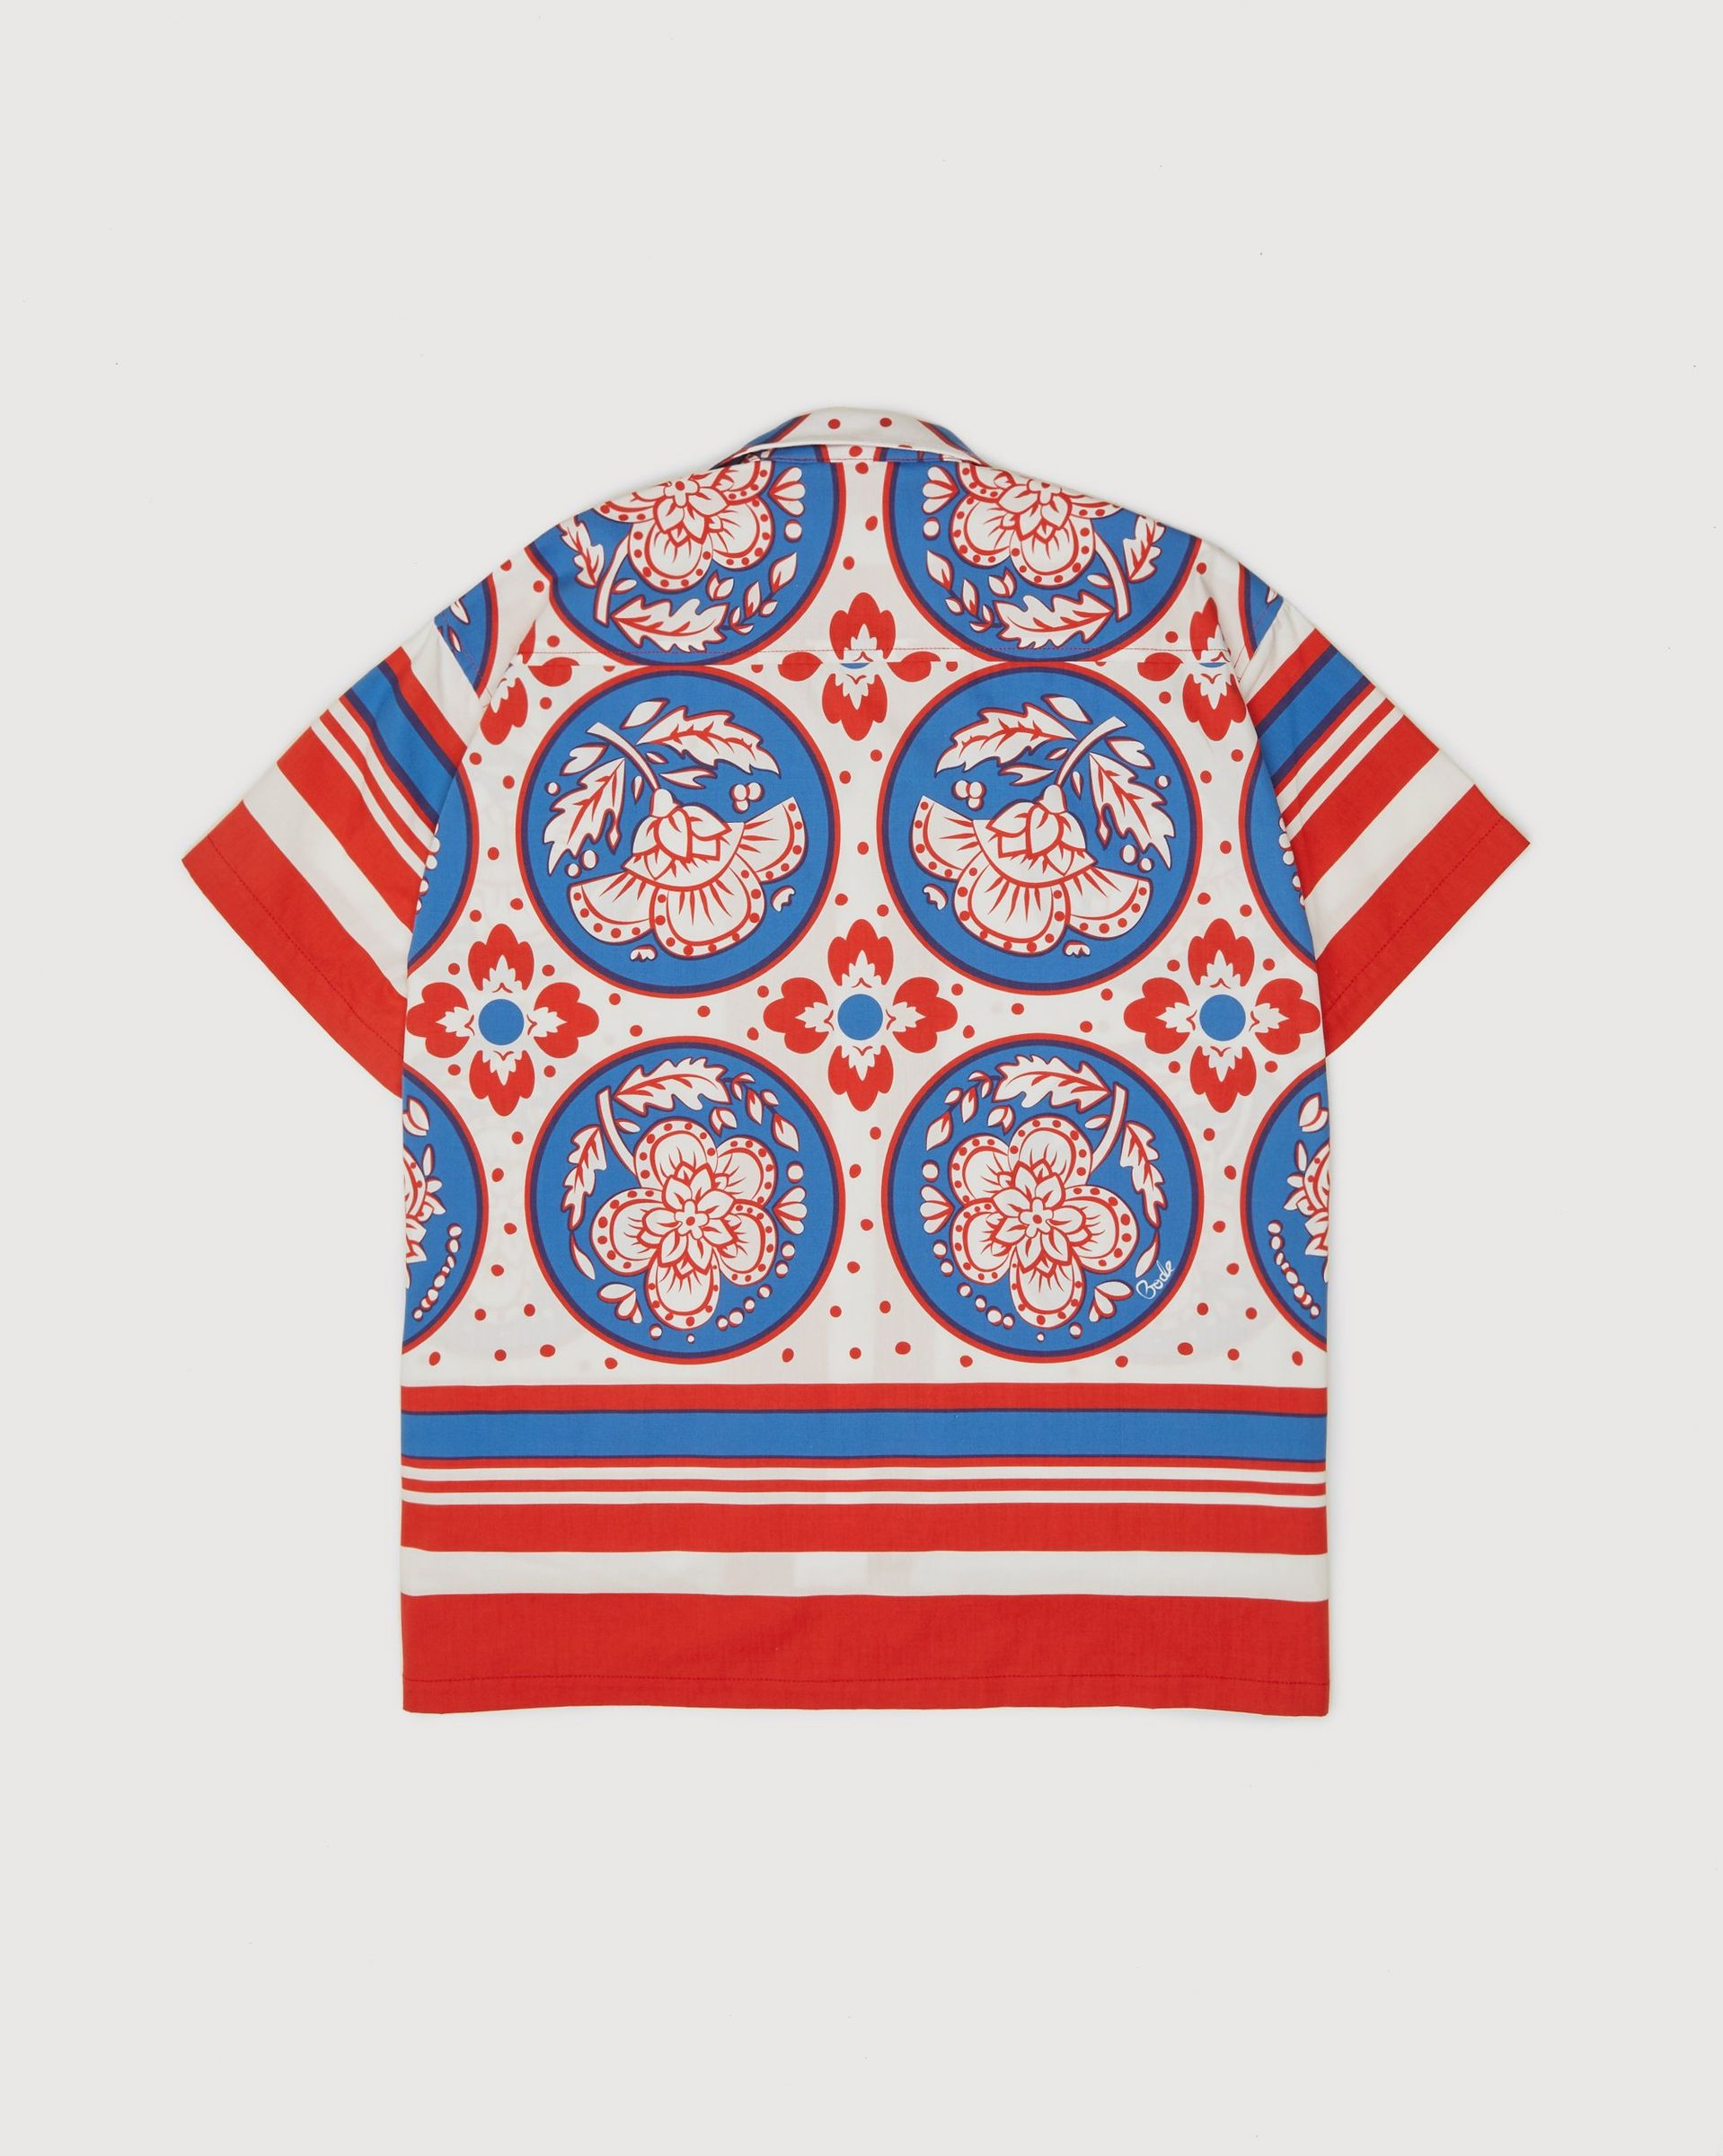 BODE - Oversized Block Print Shirt Blue Red - Image 2